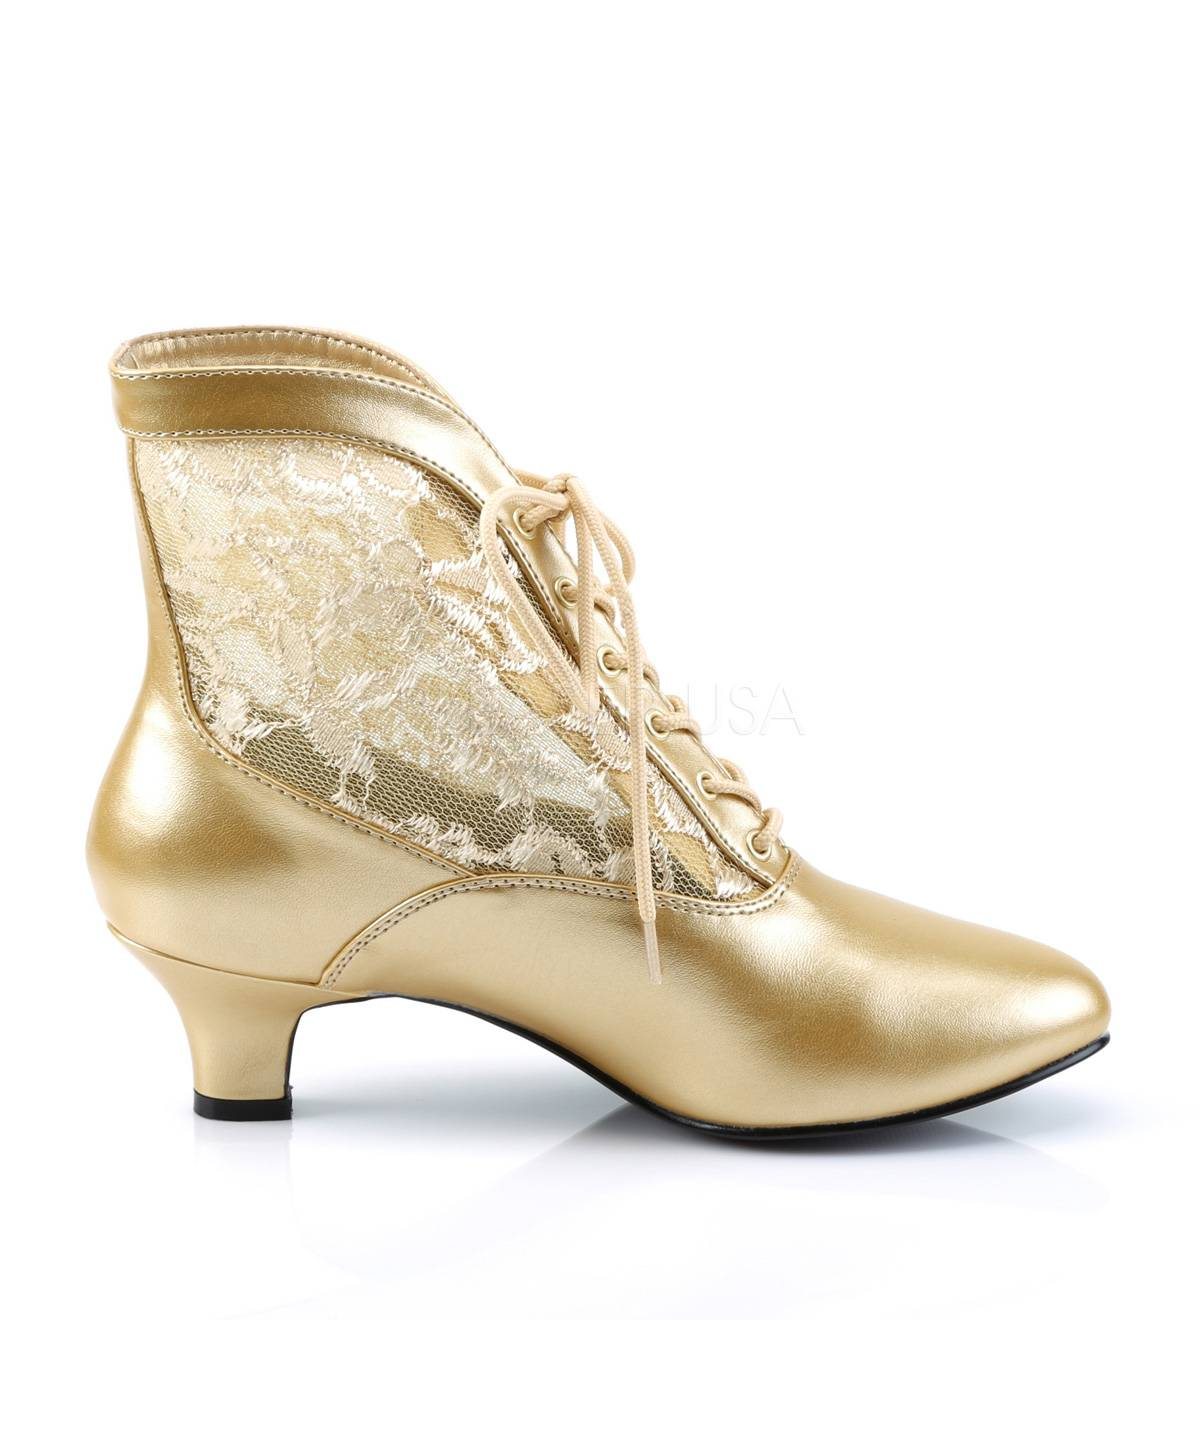 Bottines-or-pour-Dame-ou-Marquise